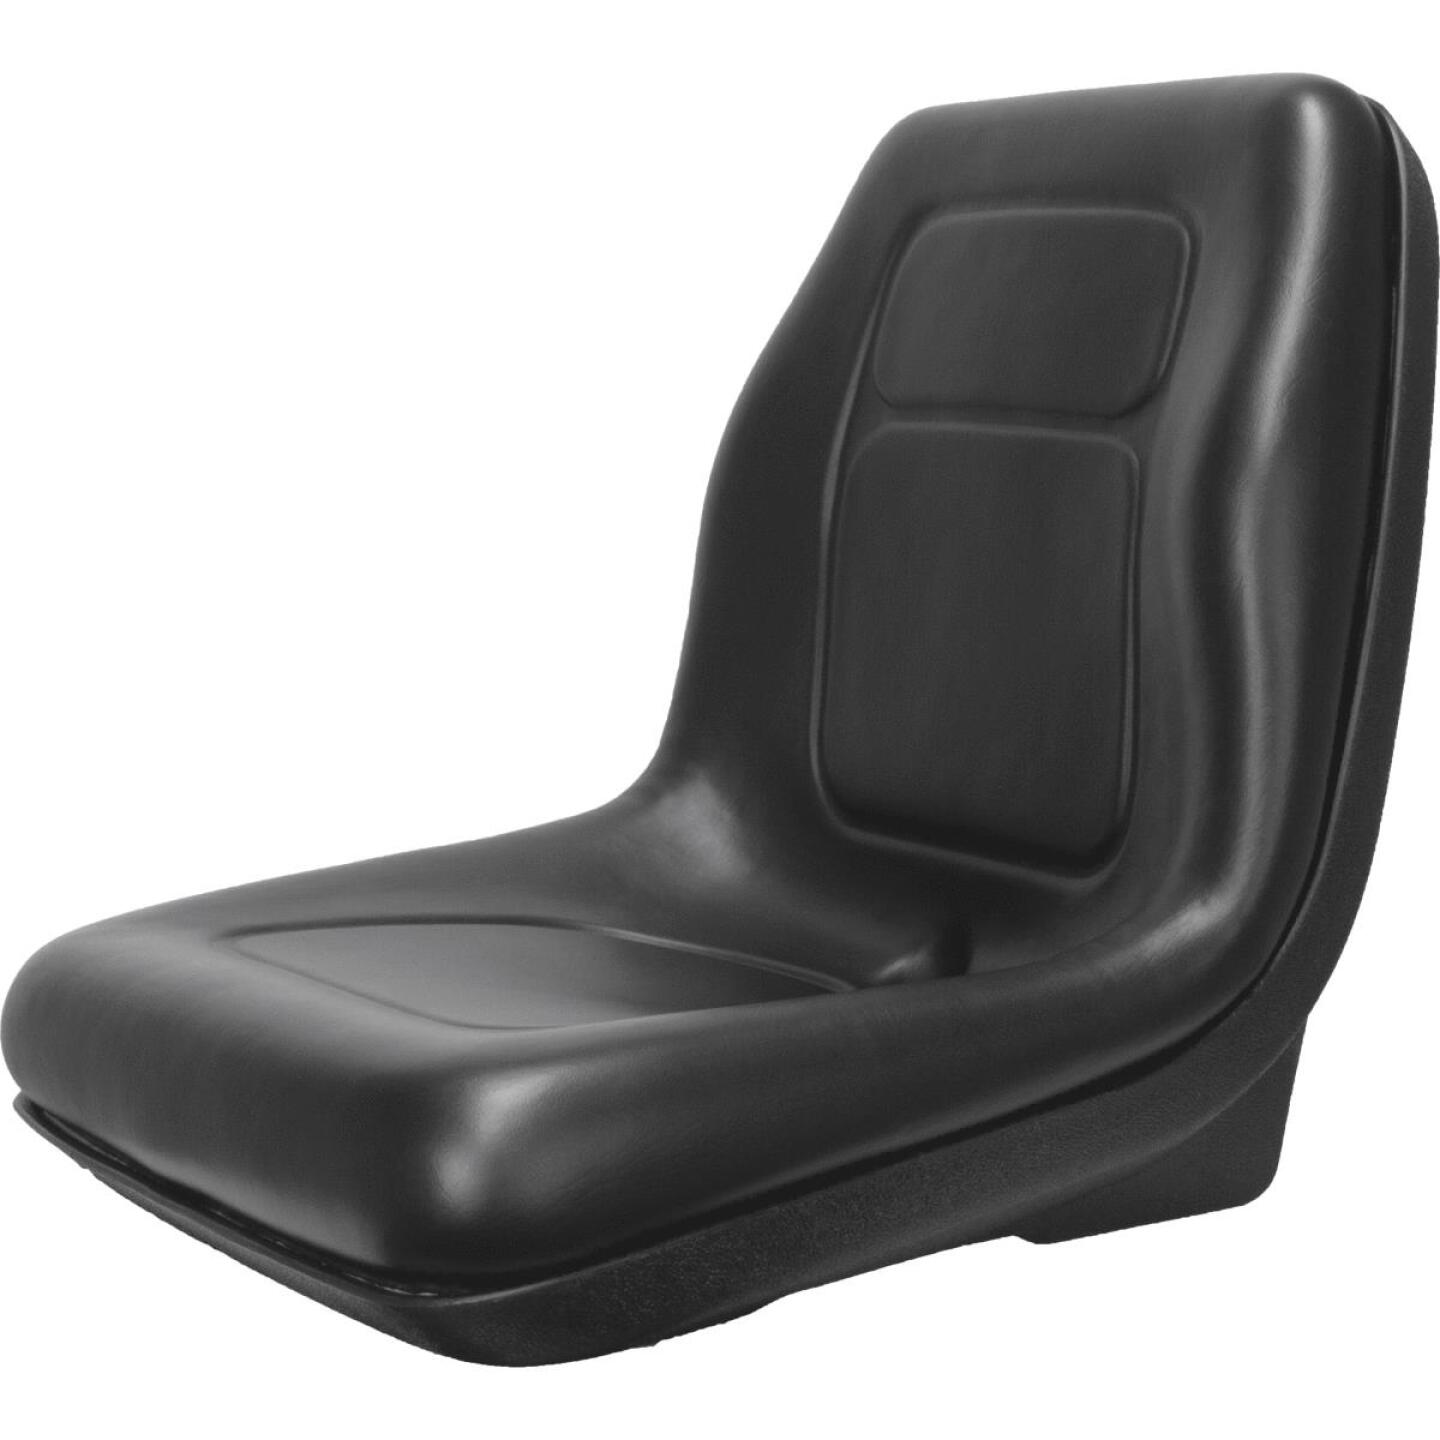 Concentric Black Talon Ultra-High Back Gator Style Black Tractor Seat Image 1